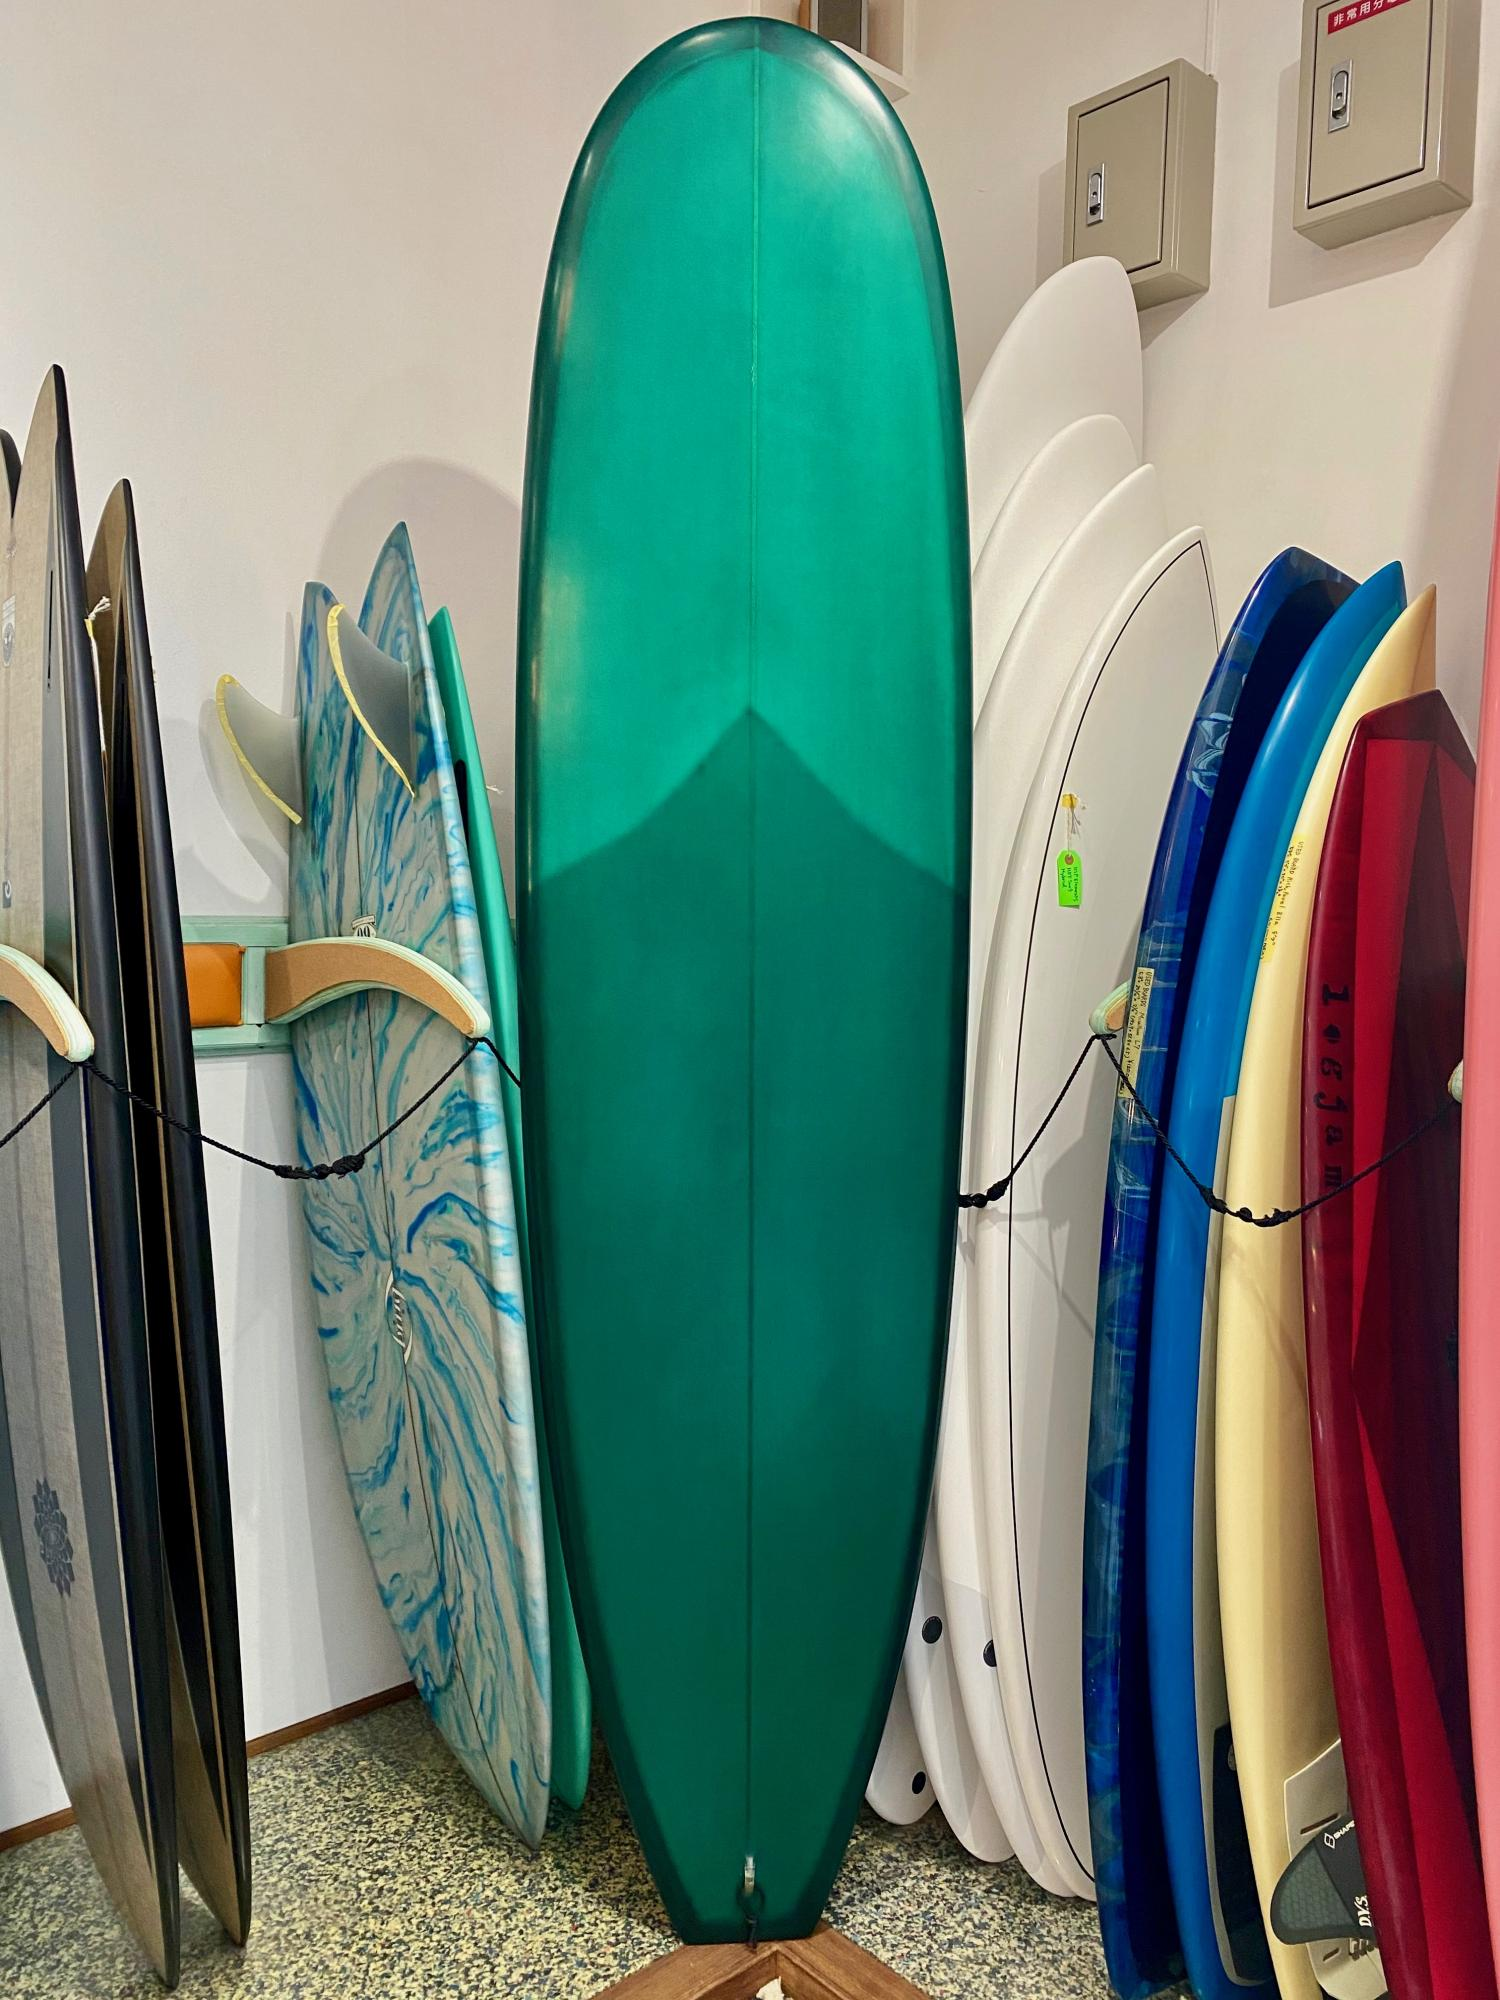 USED BOARDS (RMD SURFBOARDS 7.6 EGG)